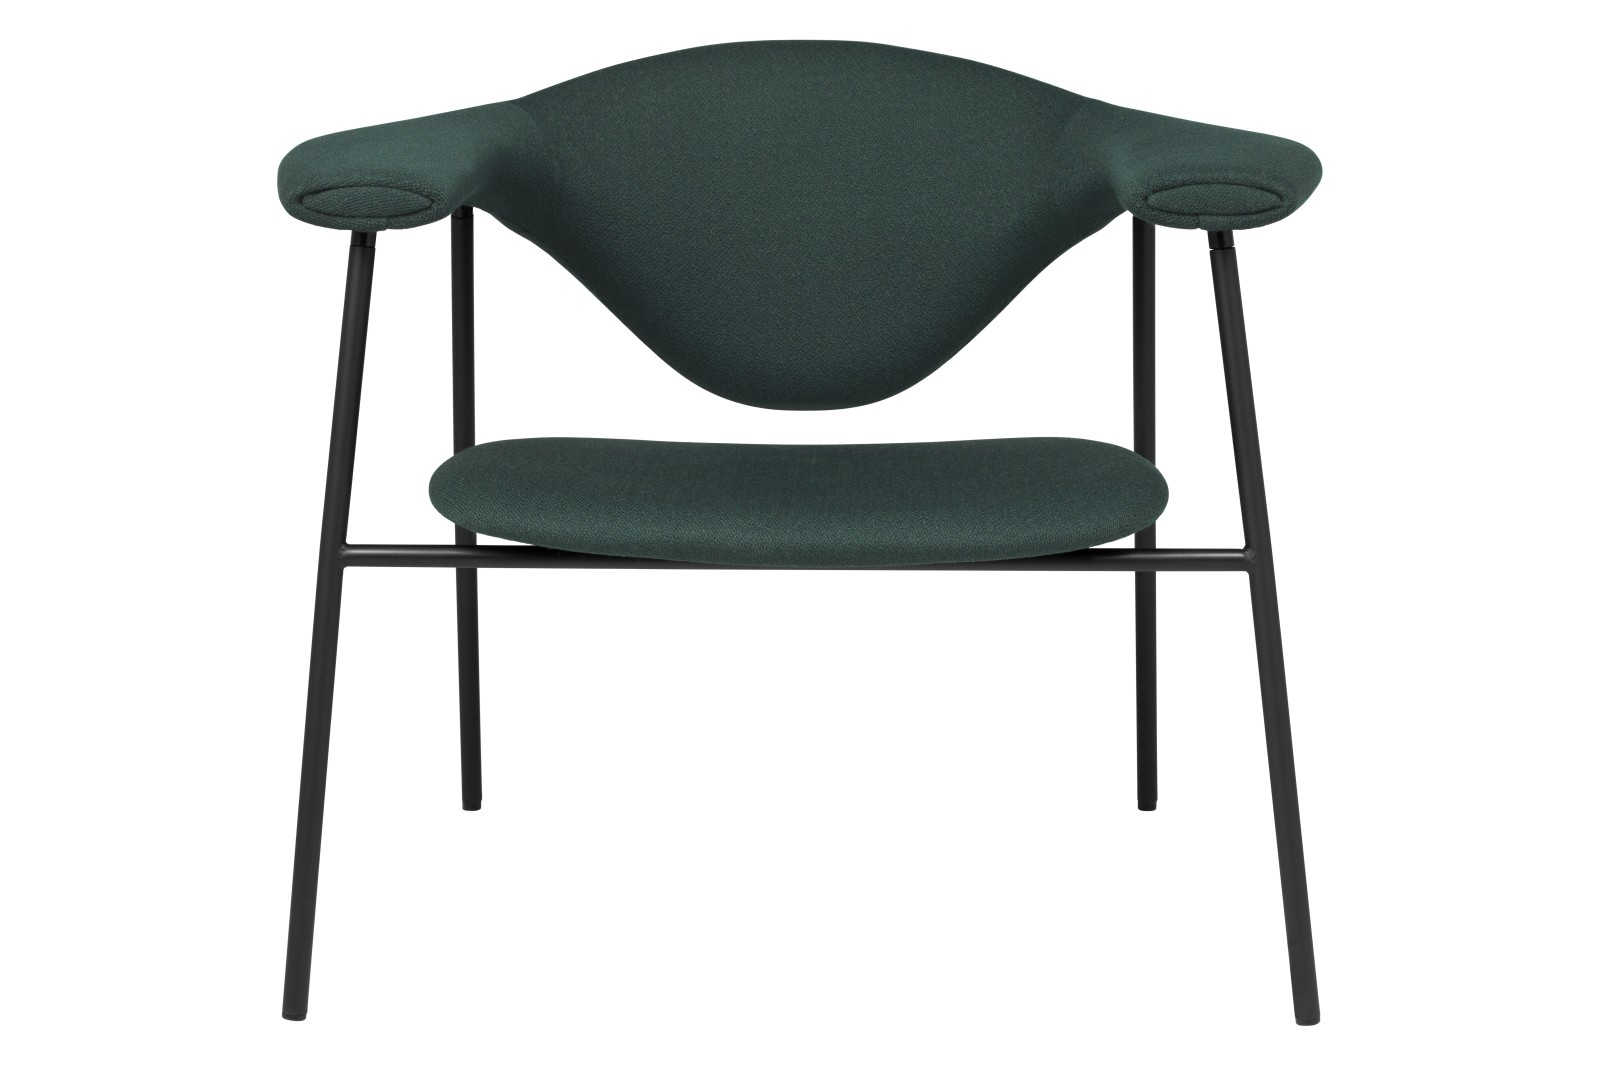 Masculo Lounge Chair, 4 - Leg Base Price Grp. 04 CM8